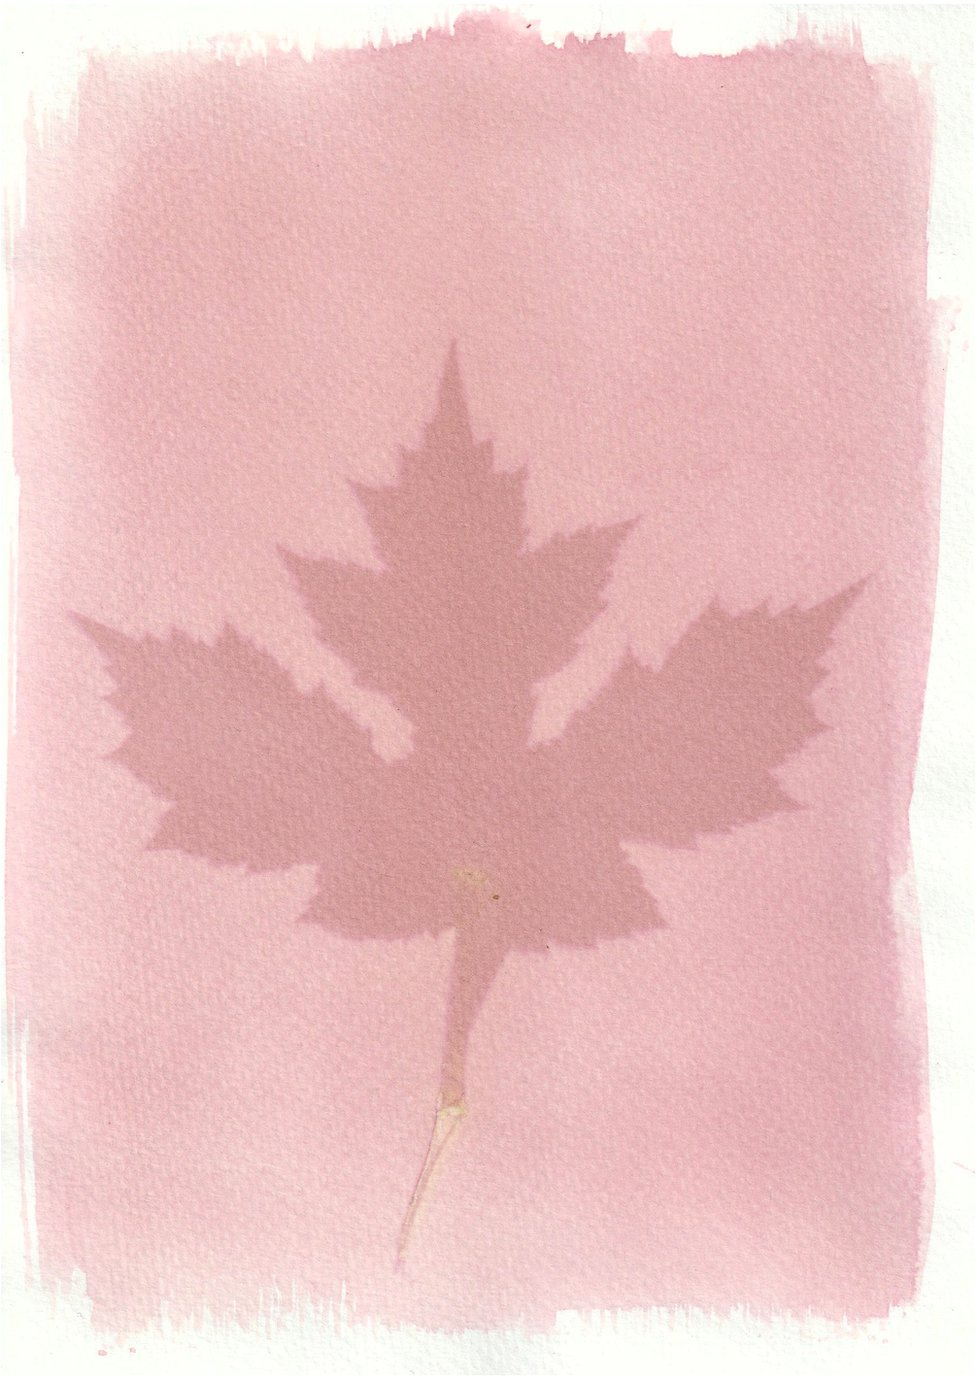 An anthotype print of a large pink leaf